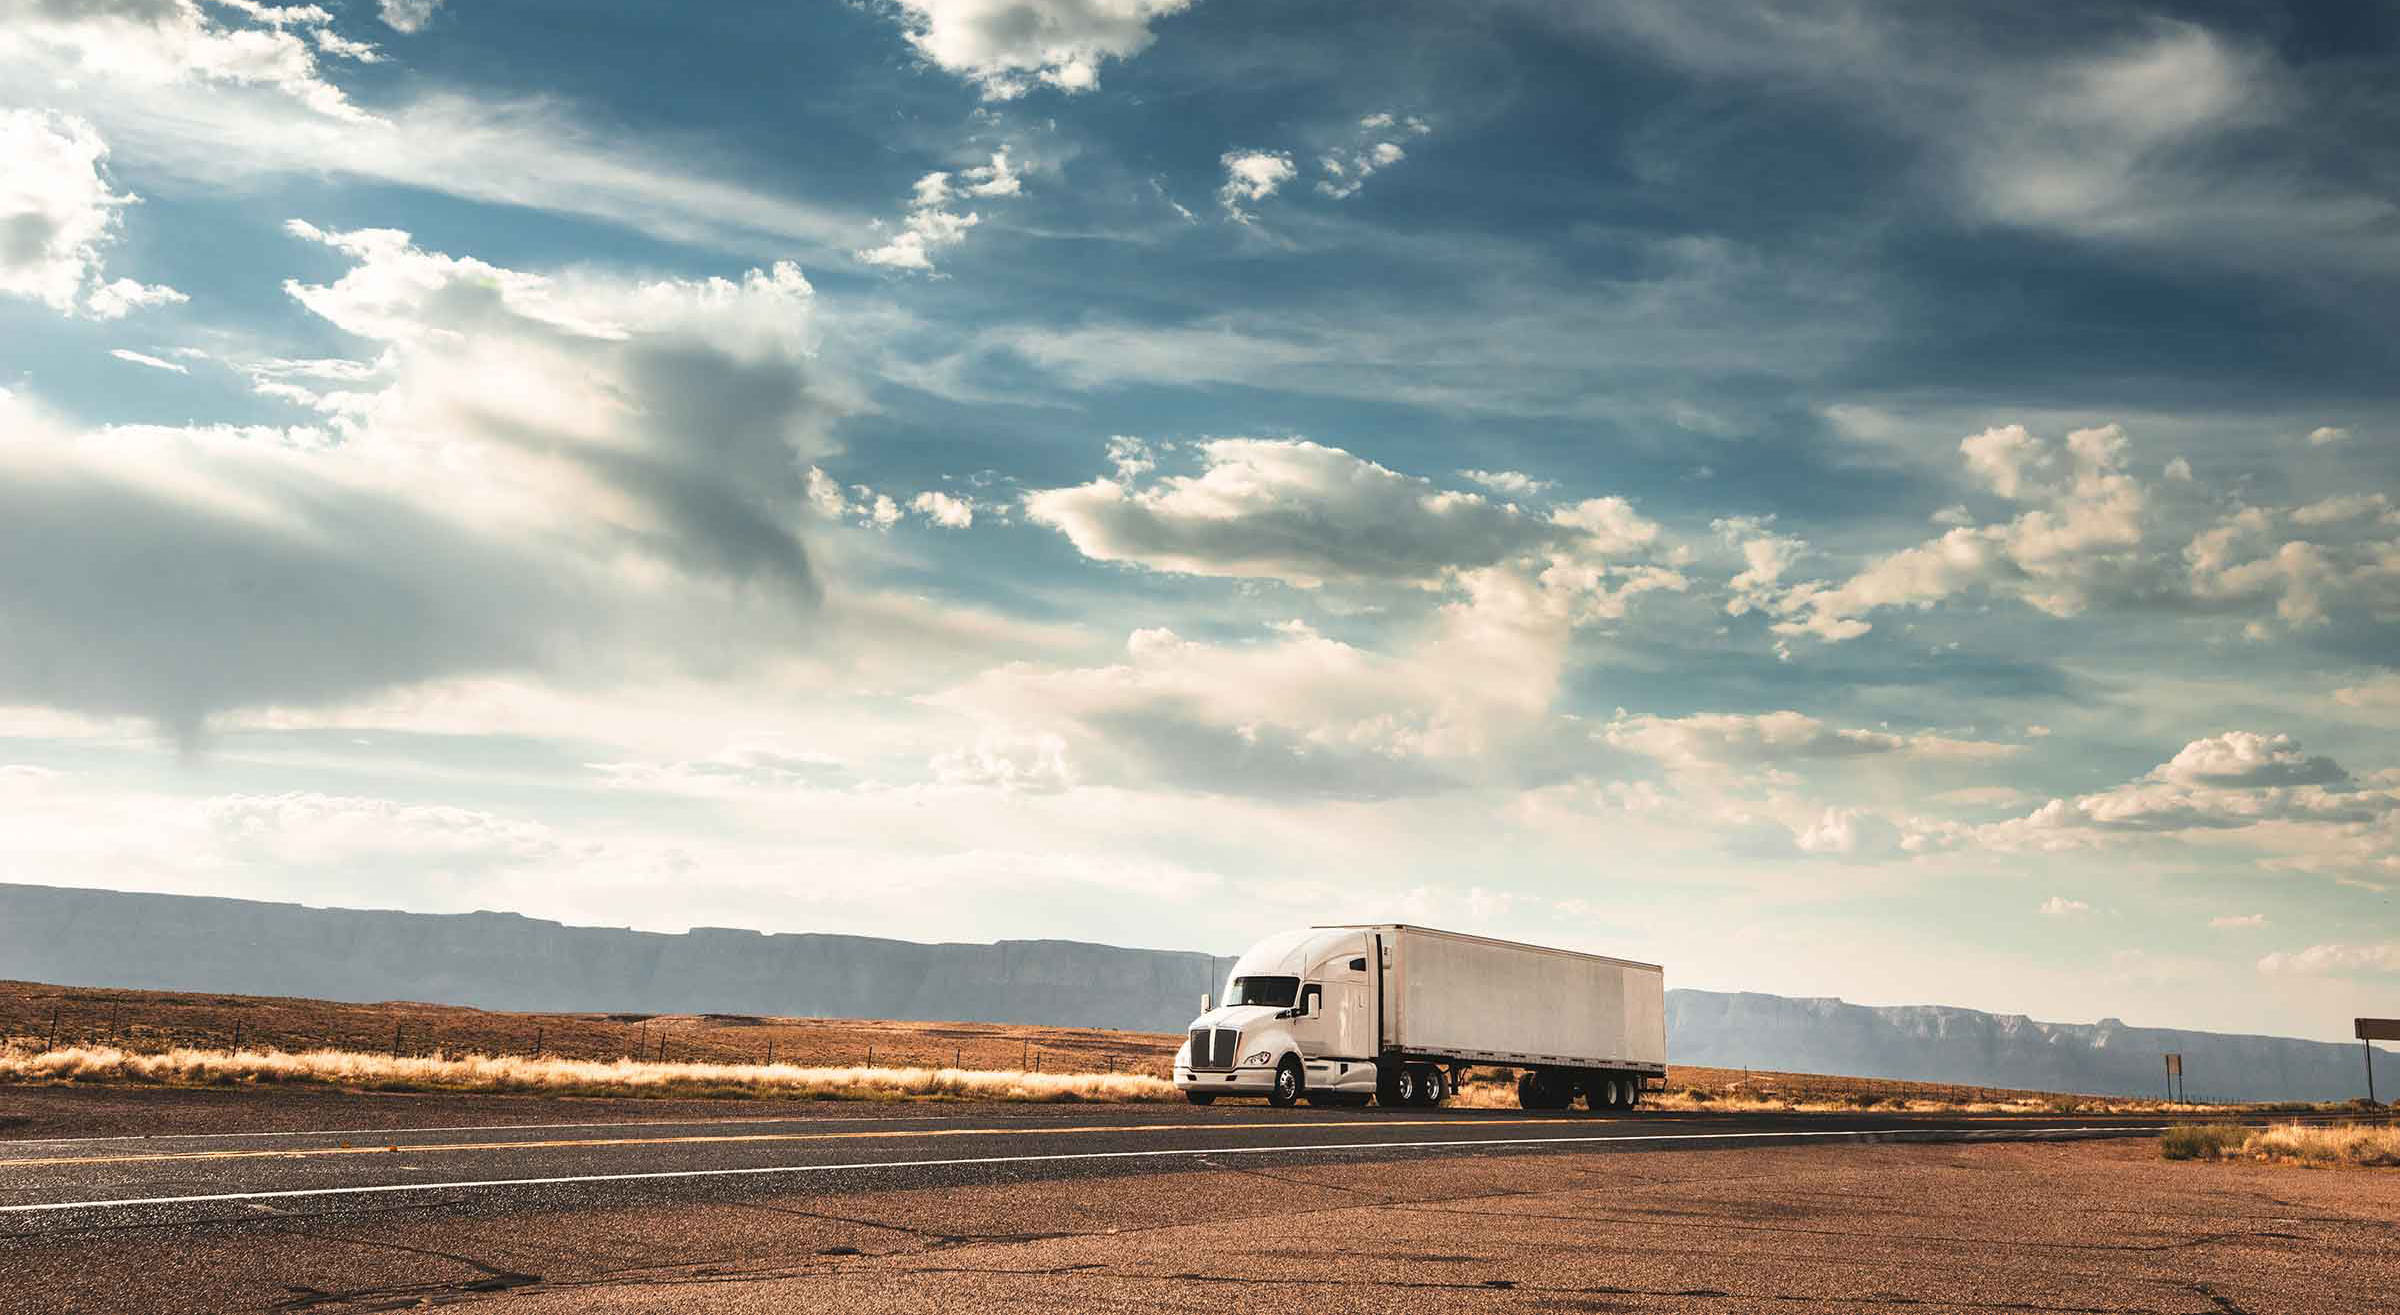 lone white long-haul truck on a deserted road